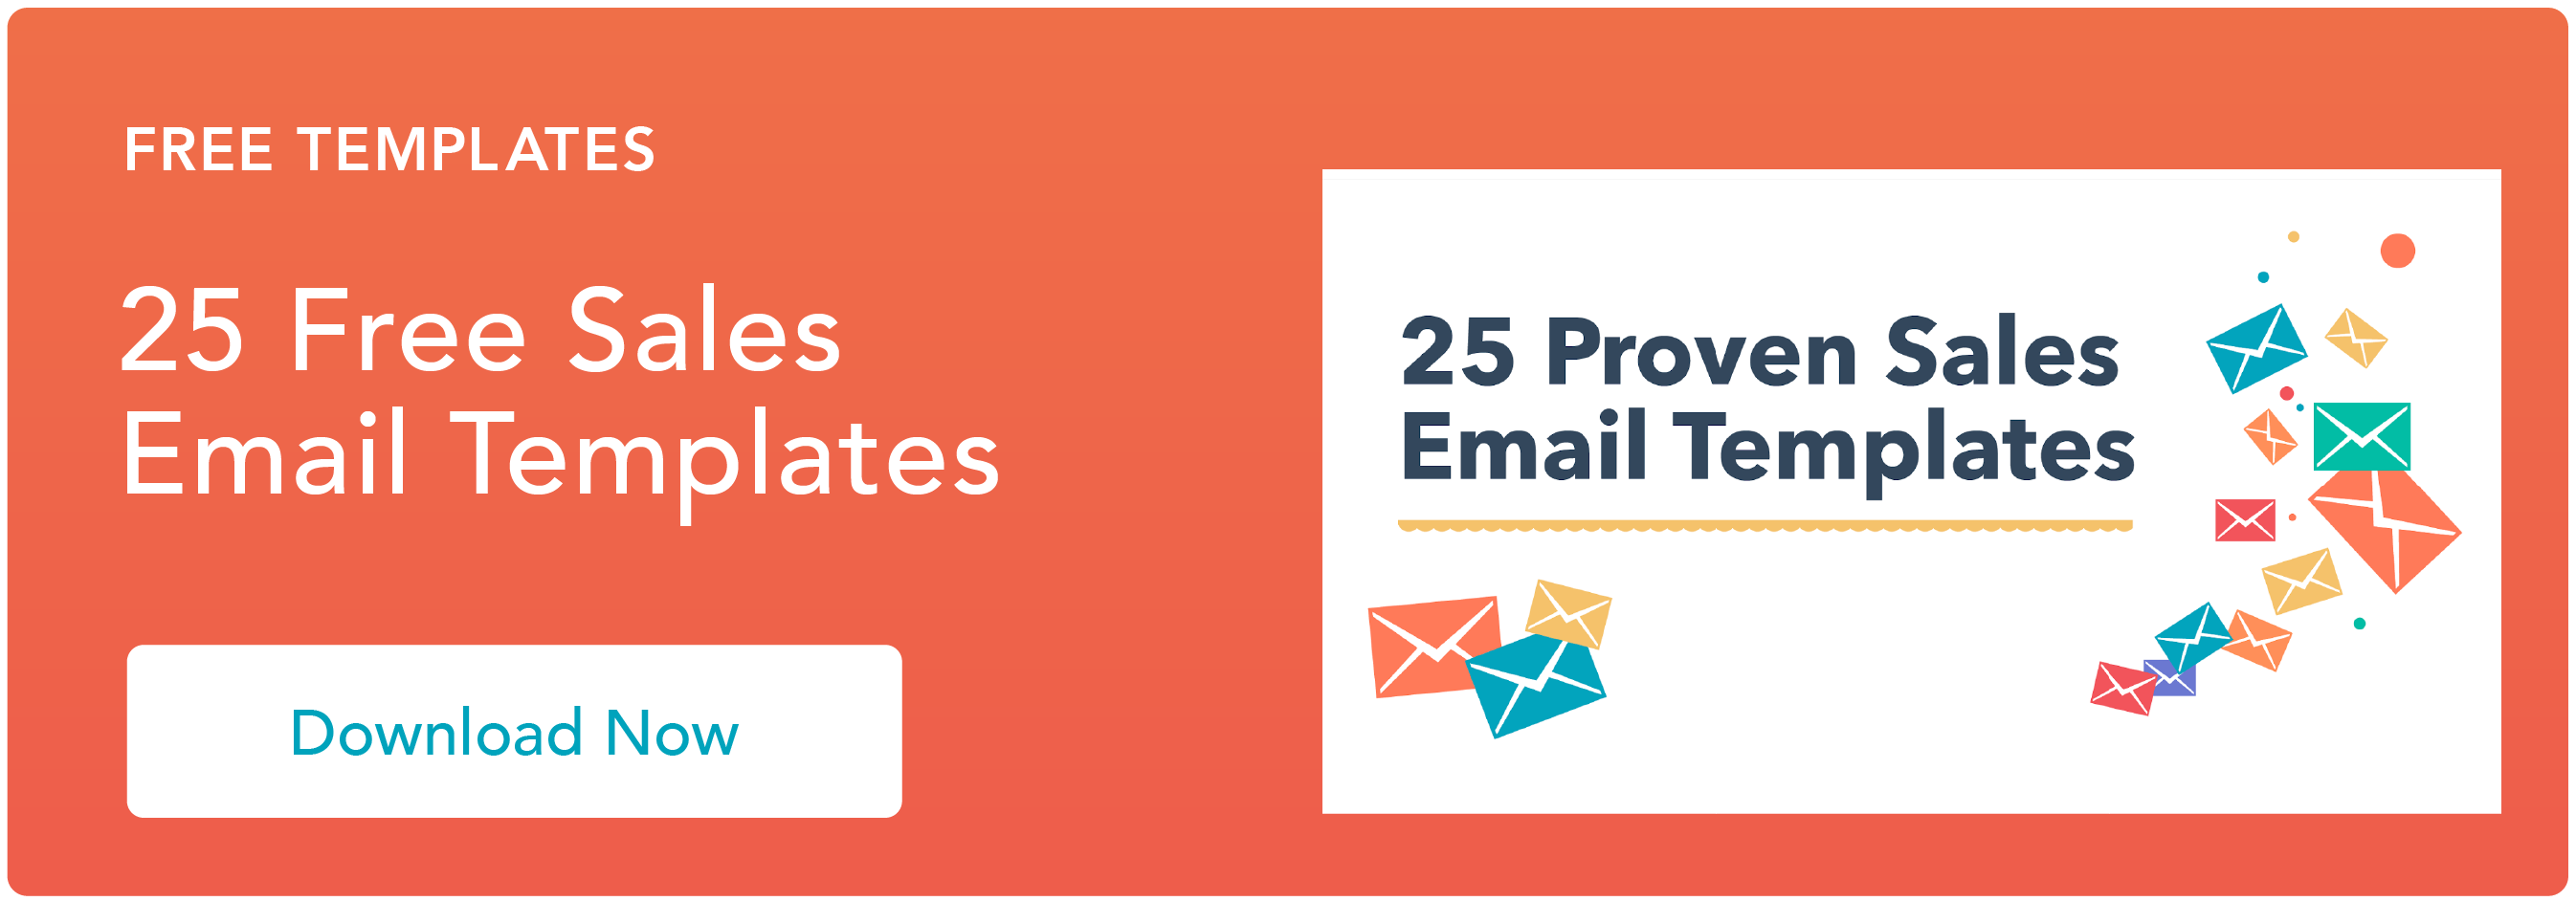 30 Sales Prospecting Email Templates Guaranteed to Start a